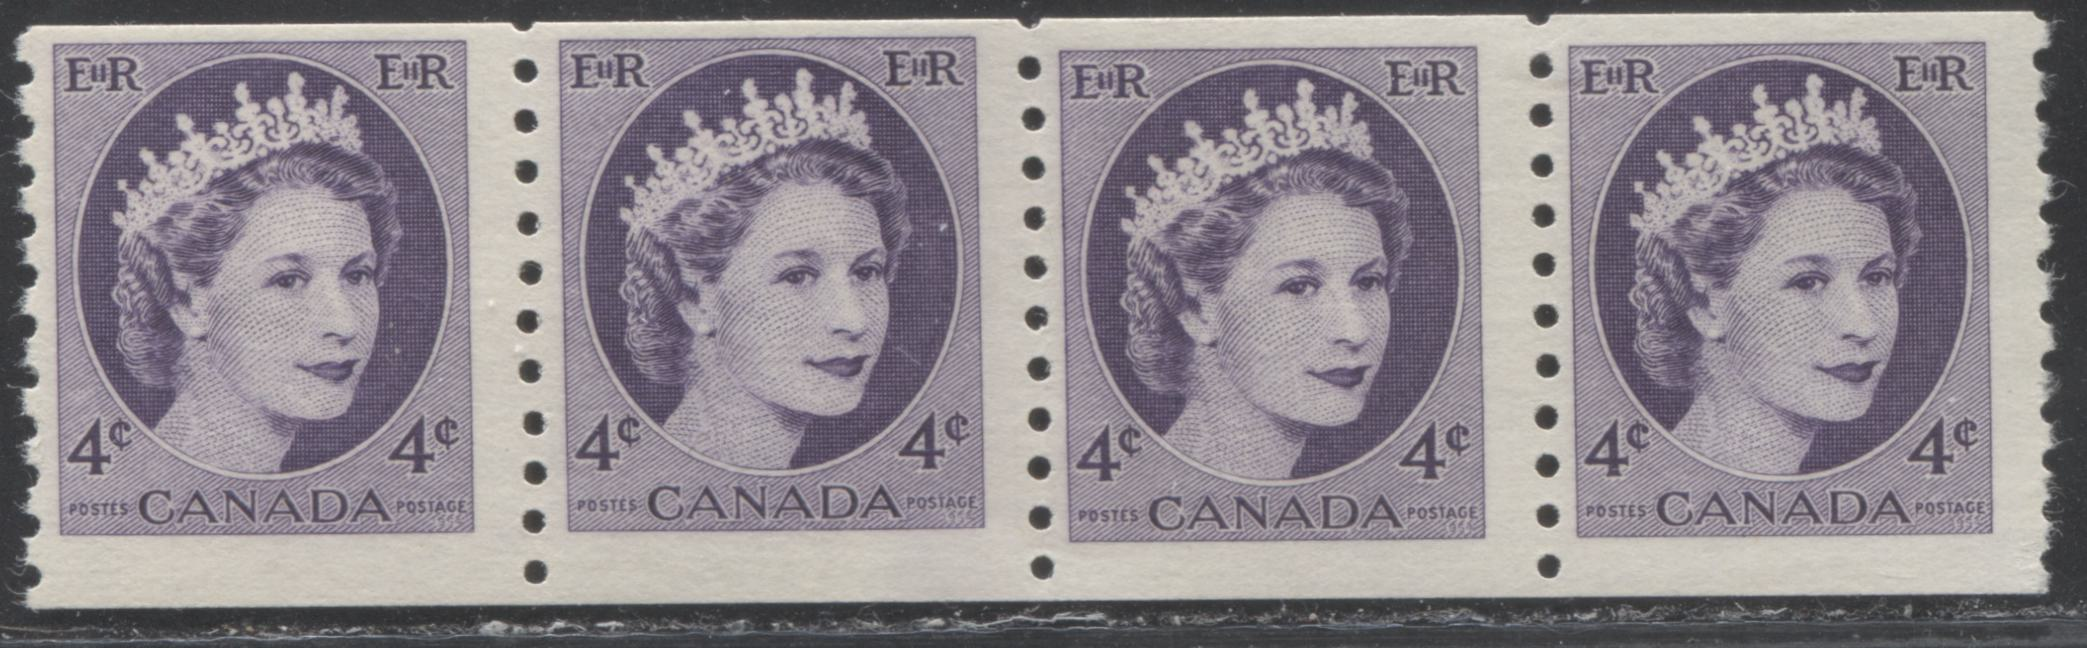 Canada #347iii 4c Dull Violet Queen Elizabeth II, 1954-1962 Wilding Issue, A Fine NH Mint Coil Jump Strip of 4 on Hibrite Smooth Vertical Wove